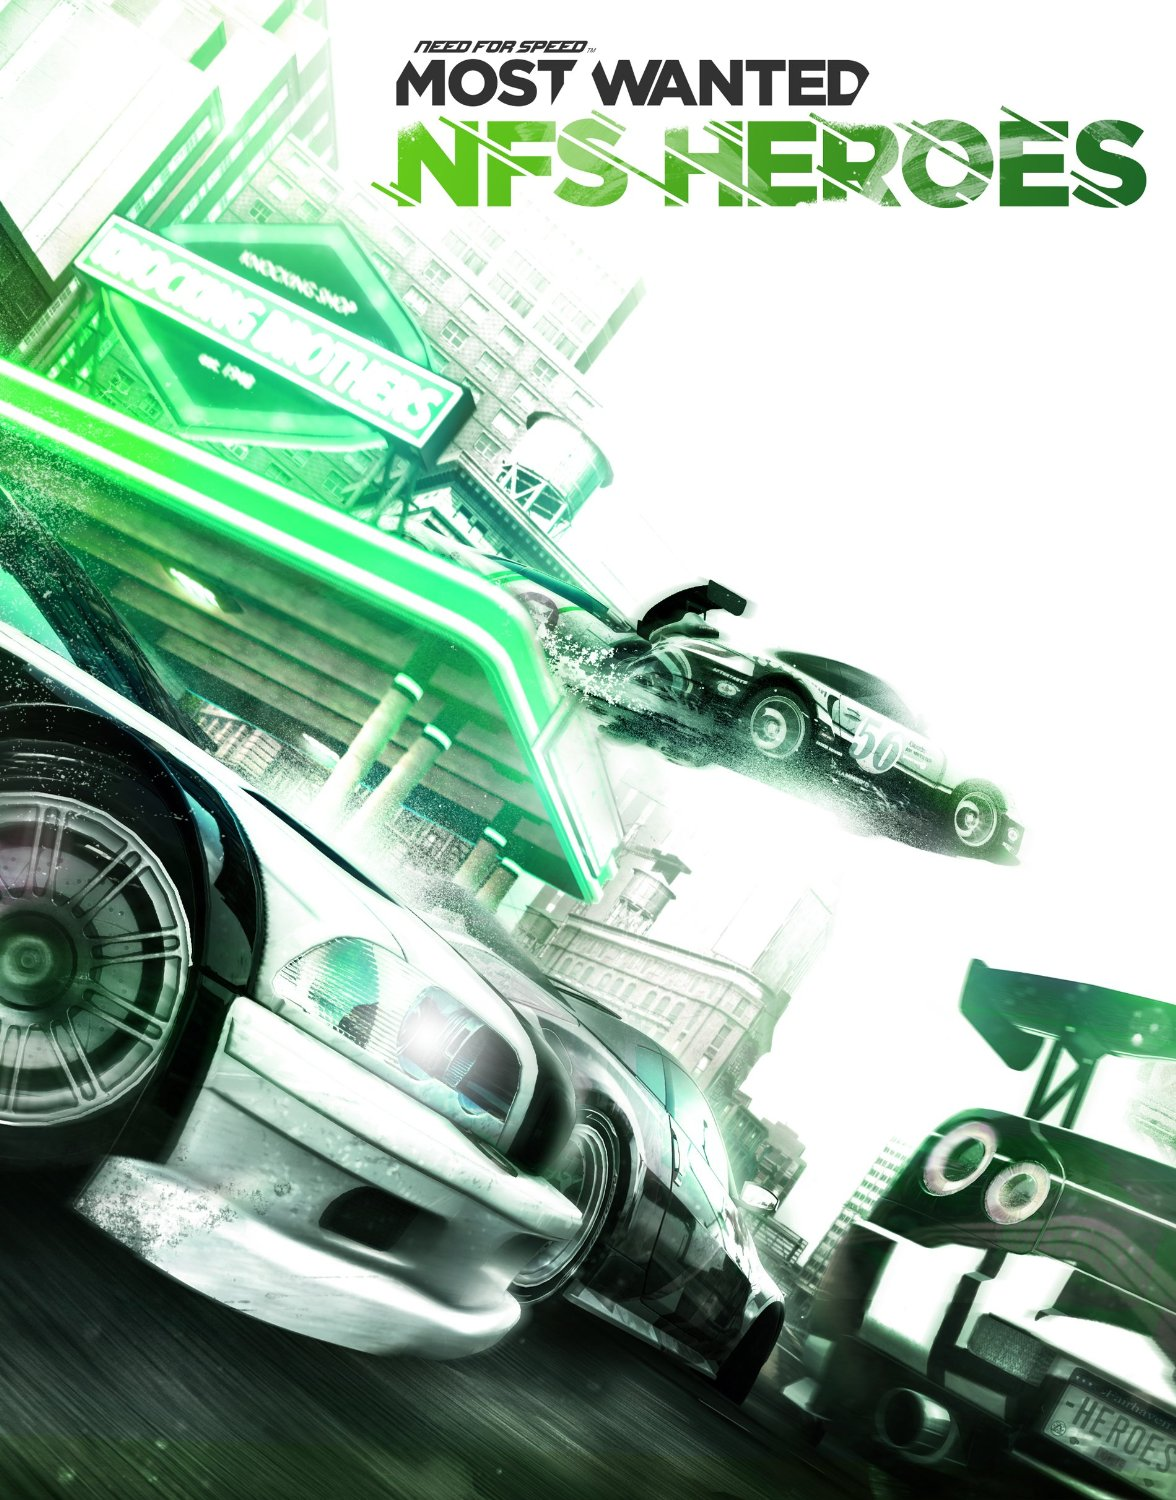 NFS - Need for Speed Most Wanted (2012) - Pakiet bohaterów NFS